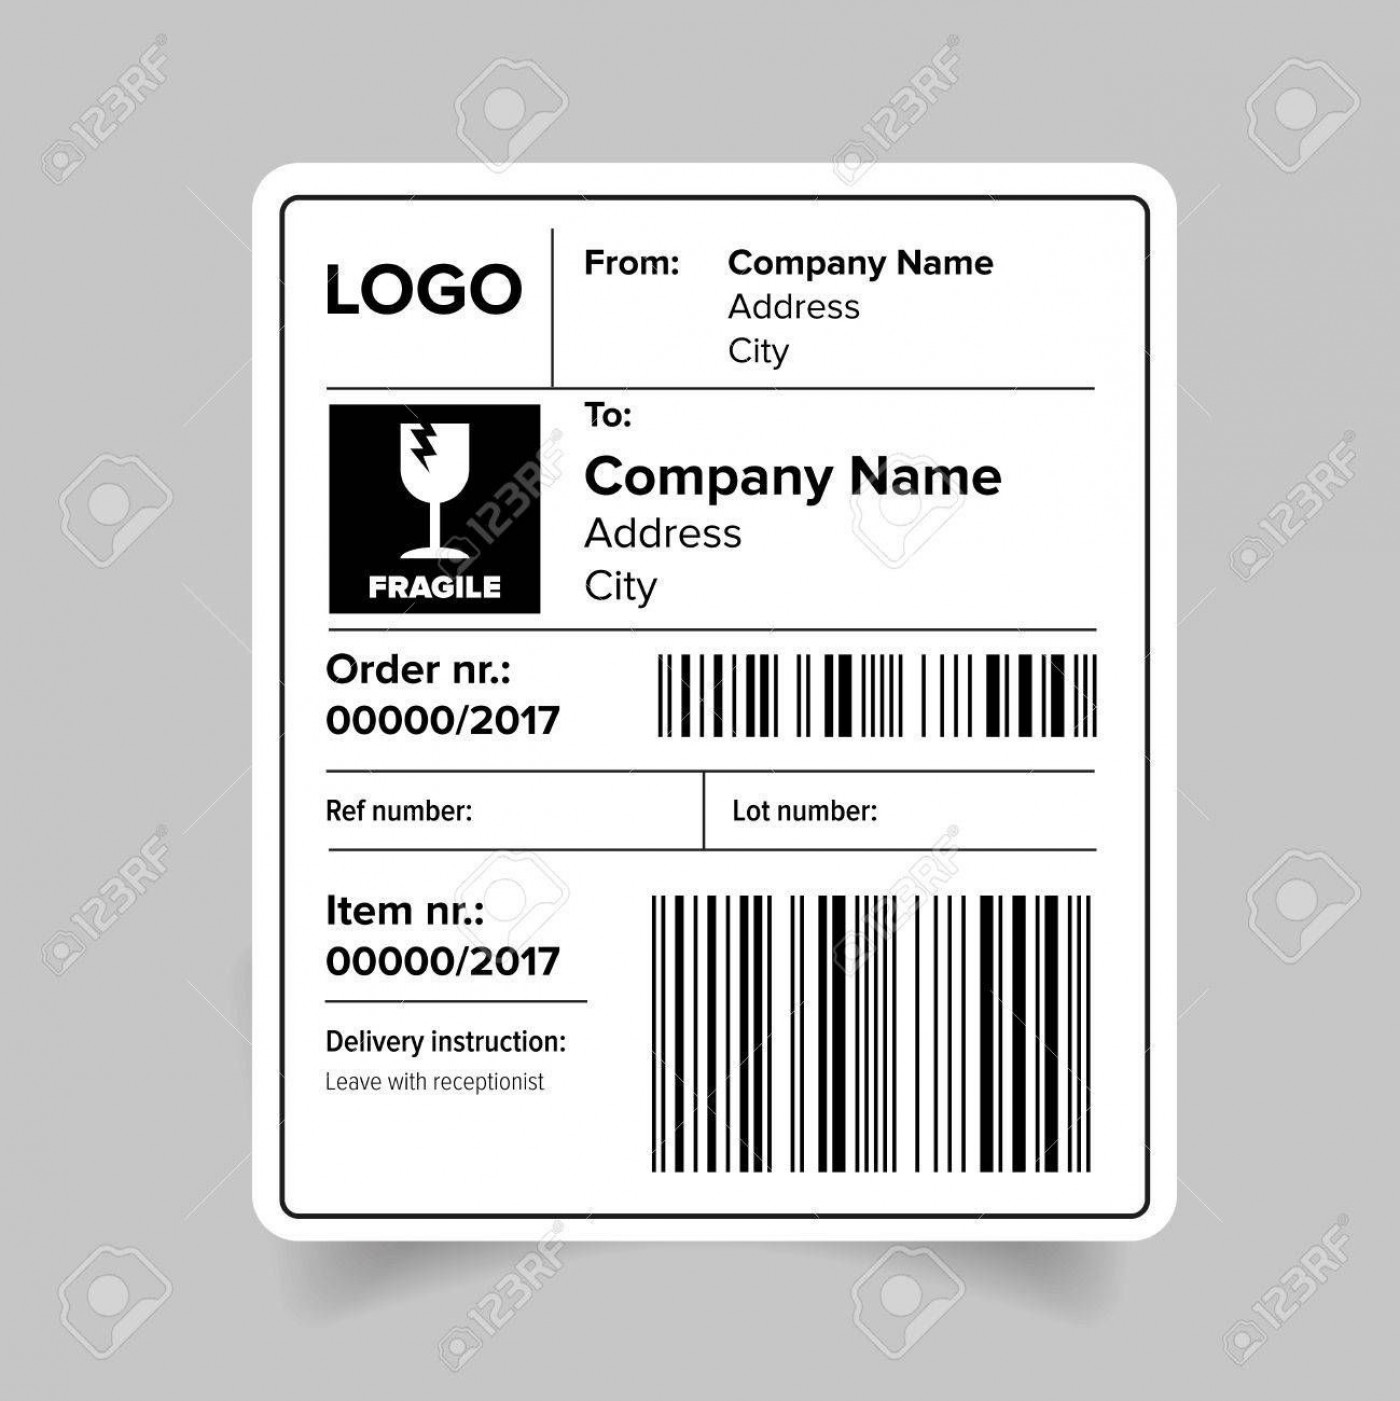 005 Impressive Cute Shipping Label Template Free Concept 1400